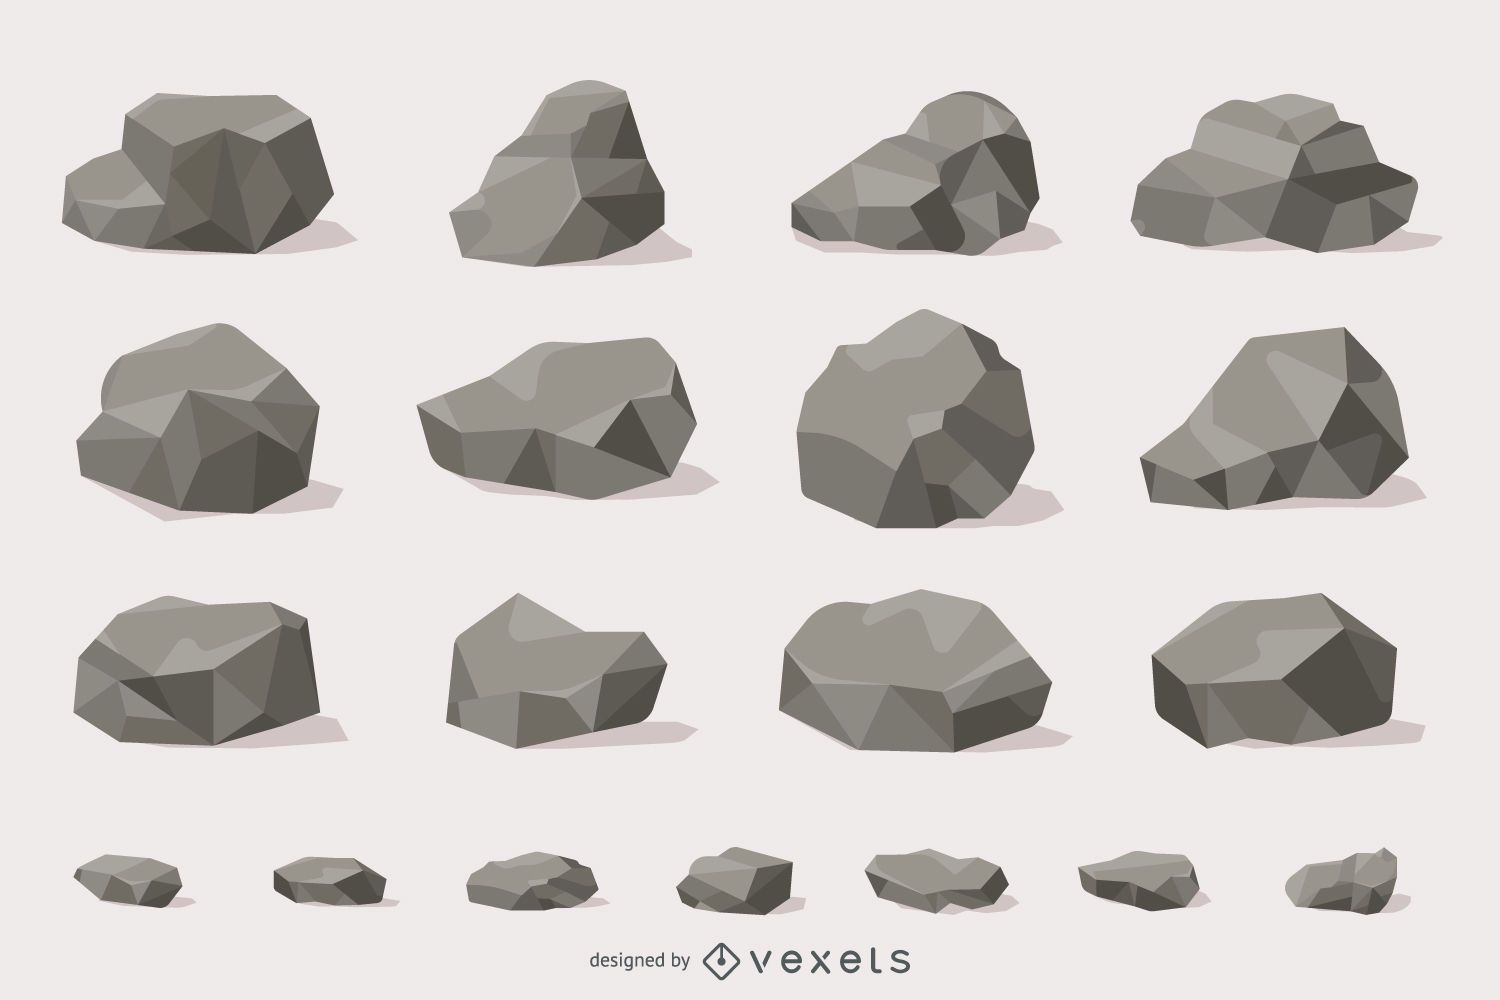 Rocks and stones illustration collection